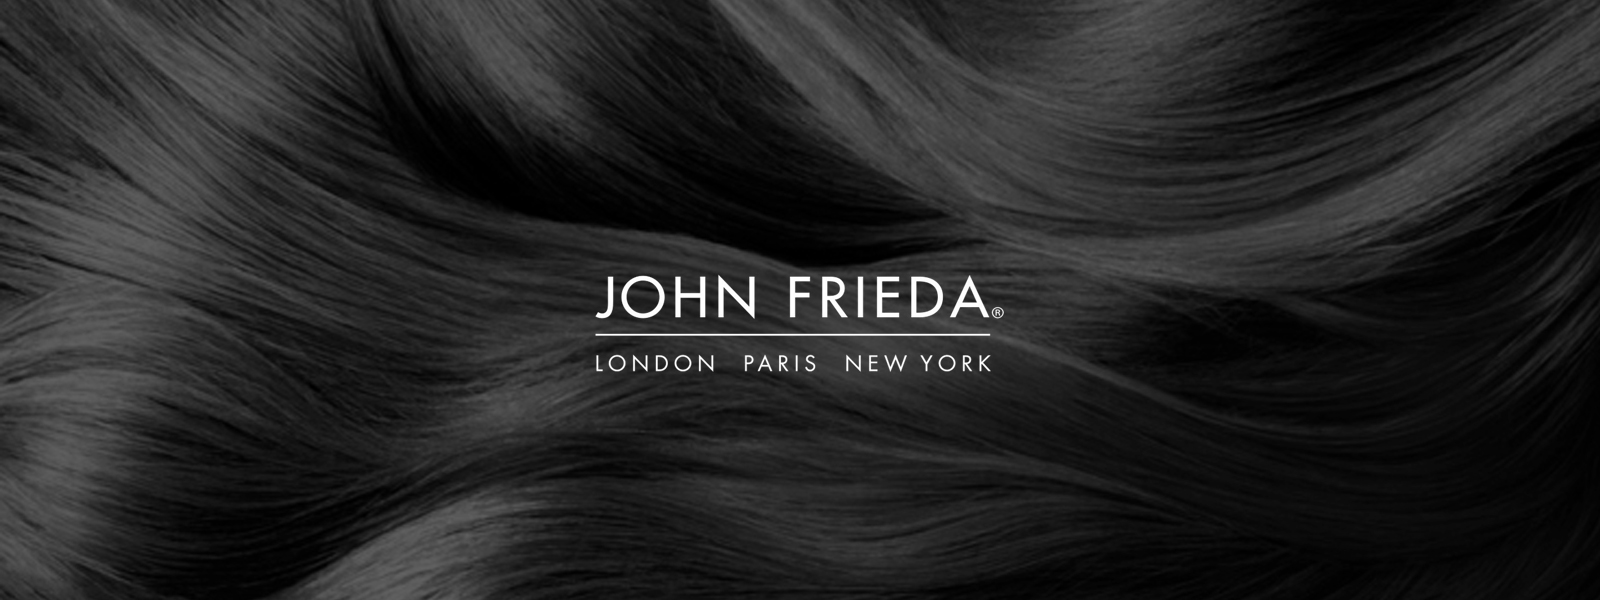 john-frieda-header